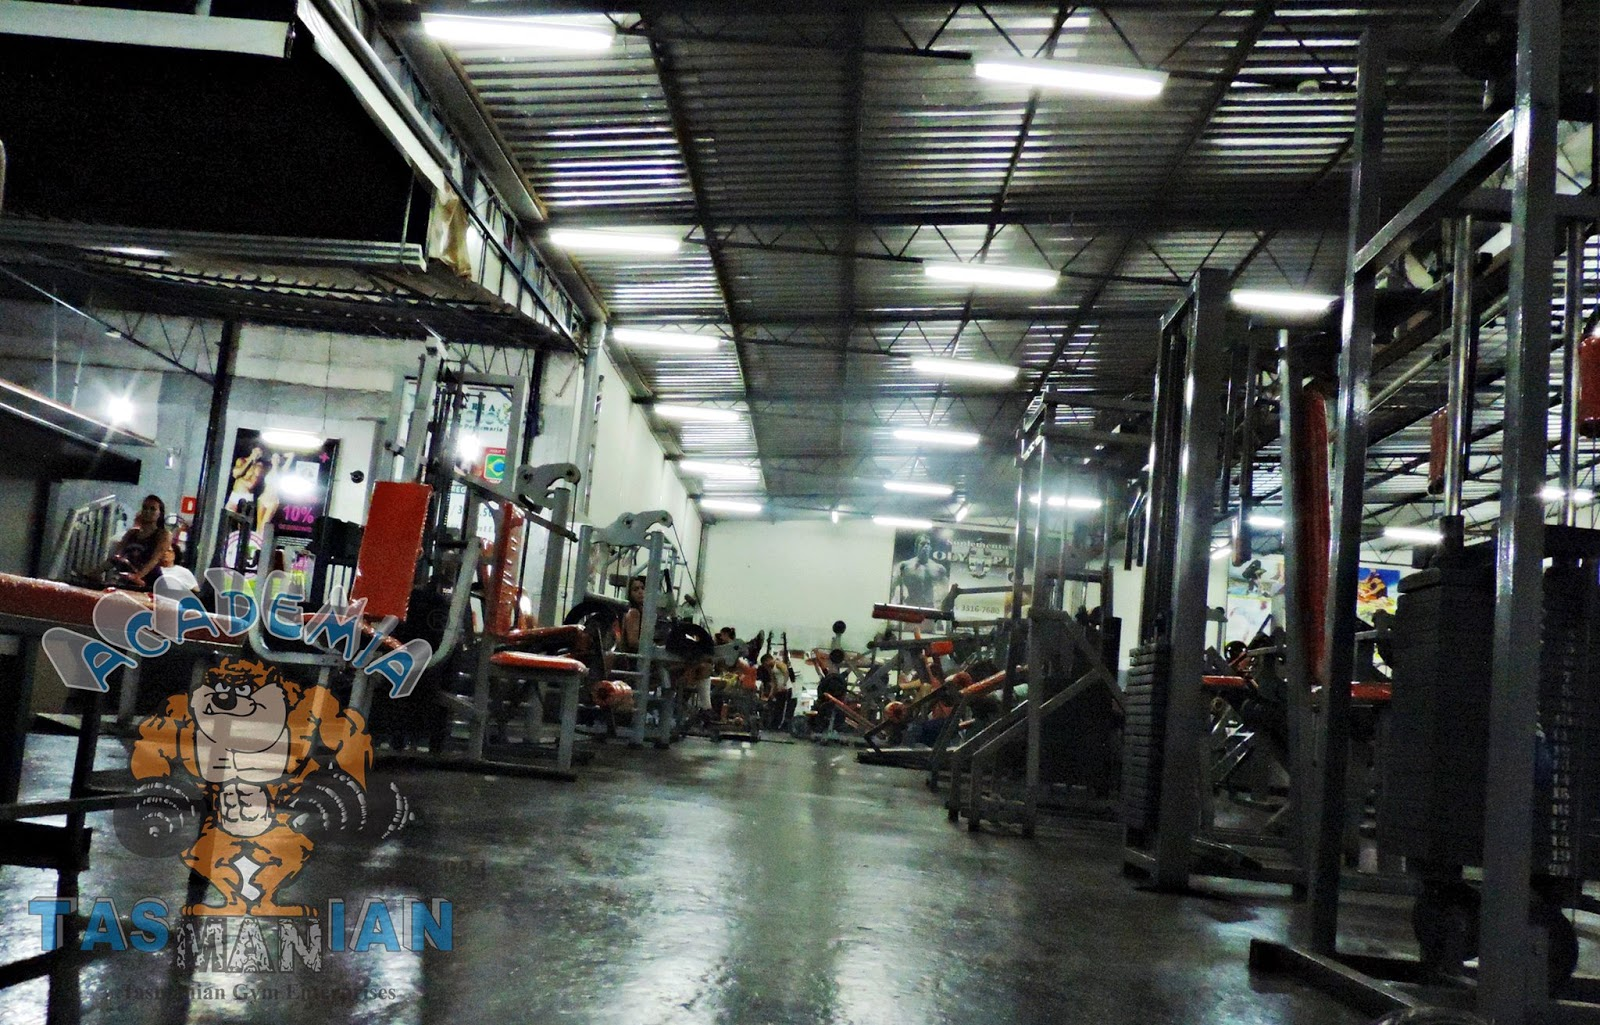 Academia Tasmanian Gym - photo